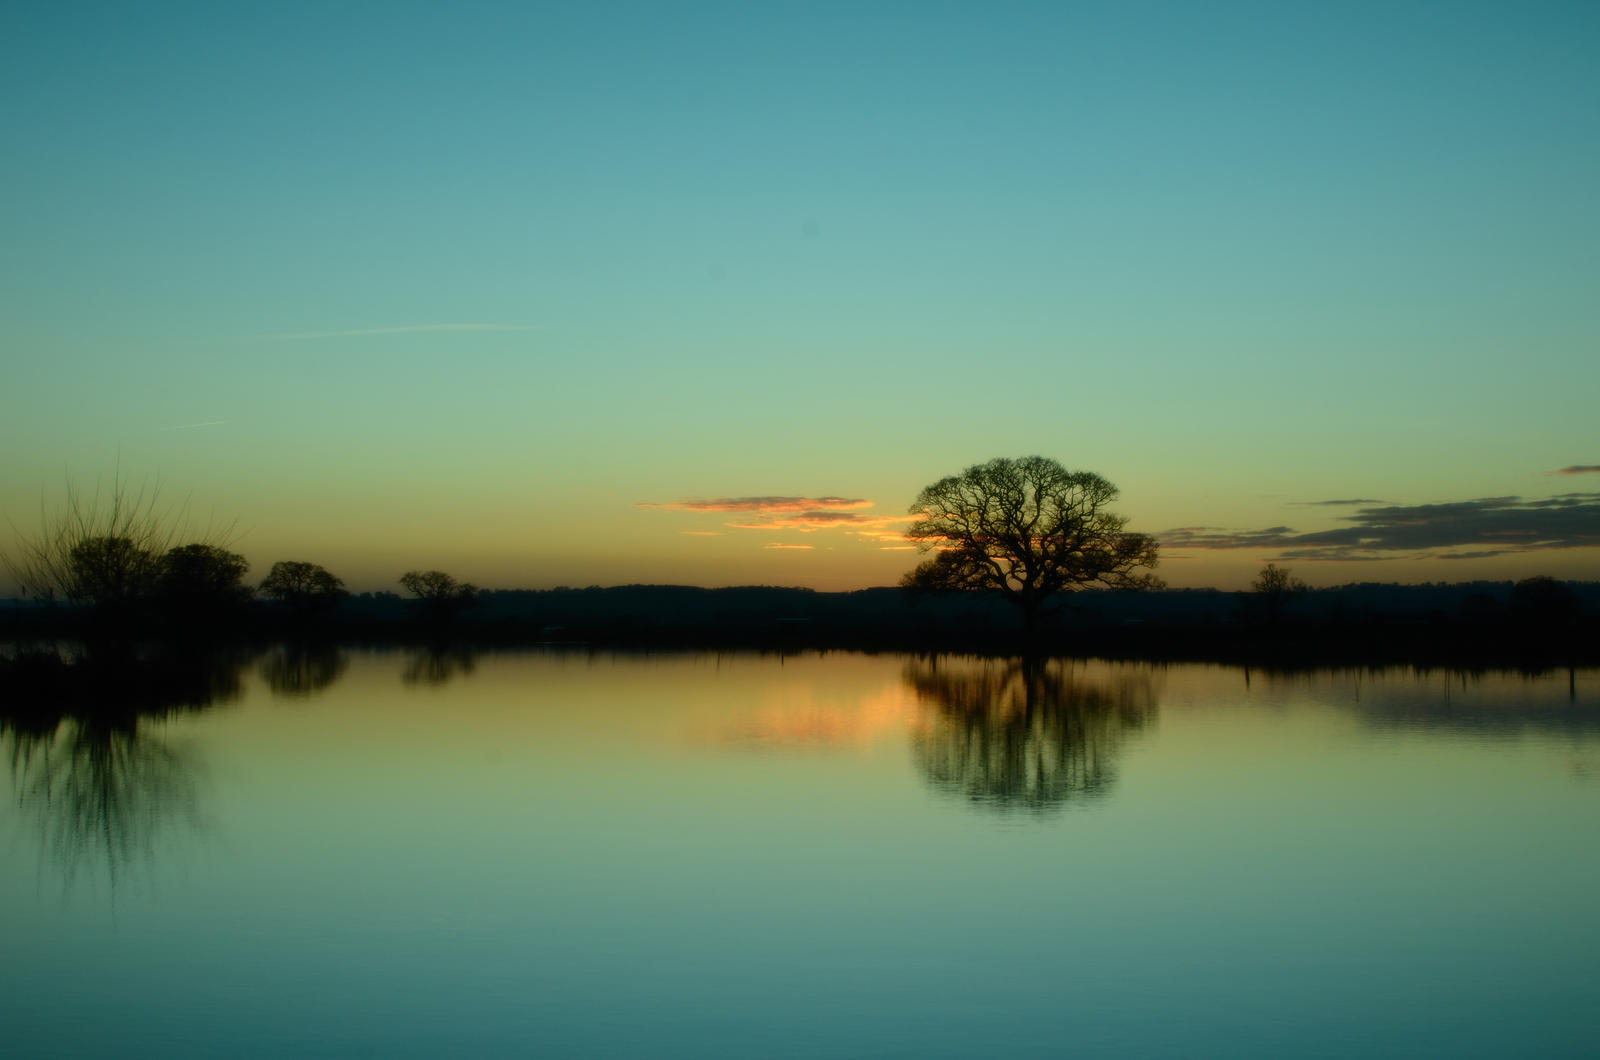 Sunset - Cokin Fishing Lakes 1 by murkin